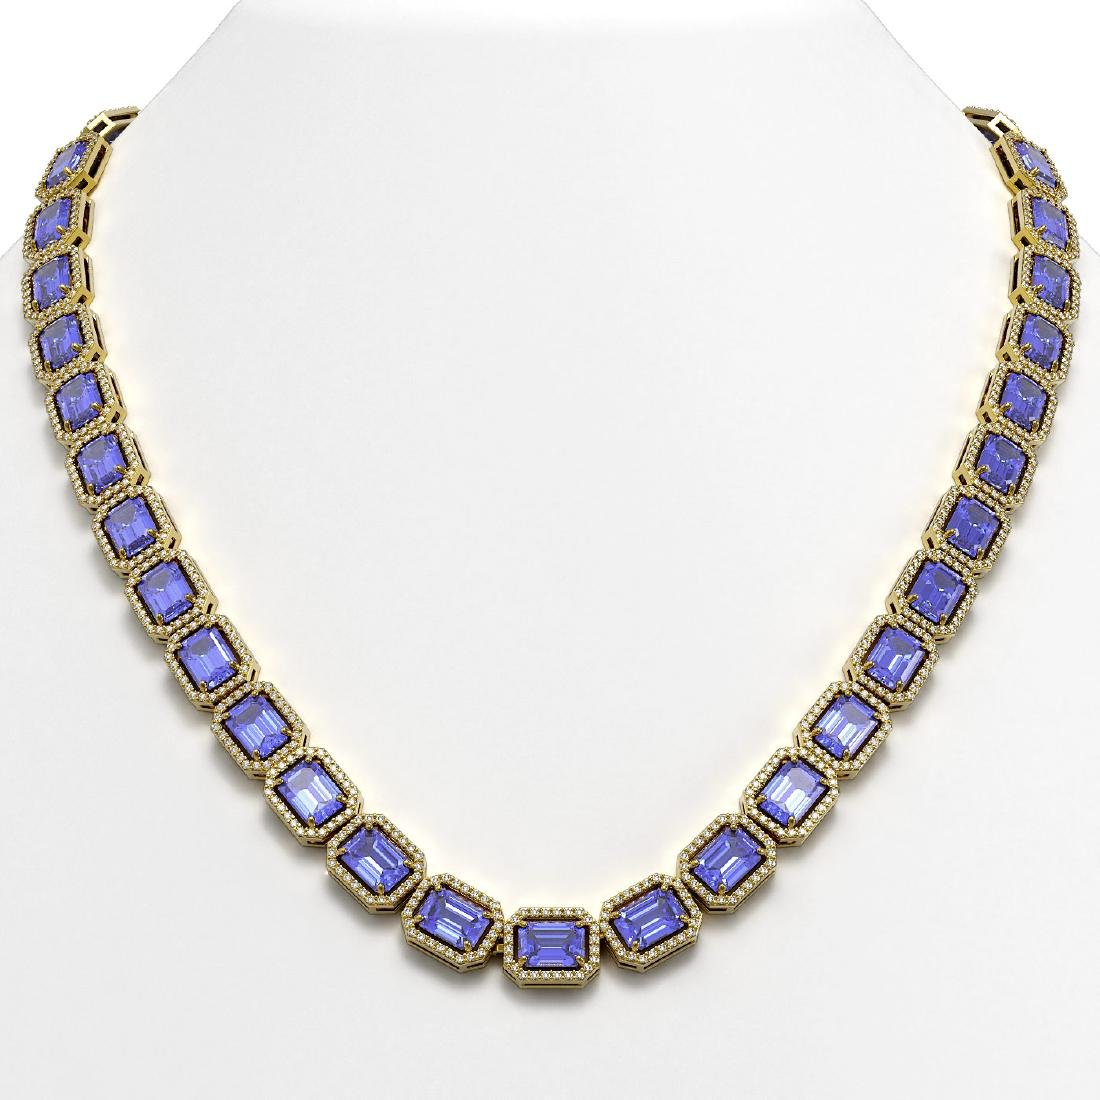 56.69 CTW Tanzanite & Diamond Halo Necklace 10K Yellow